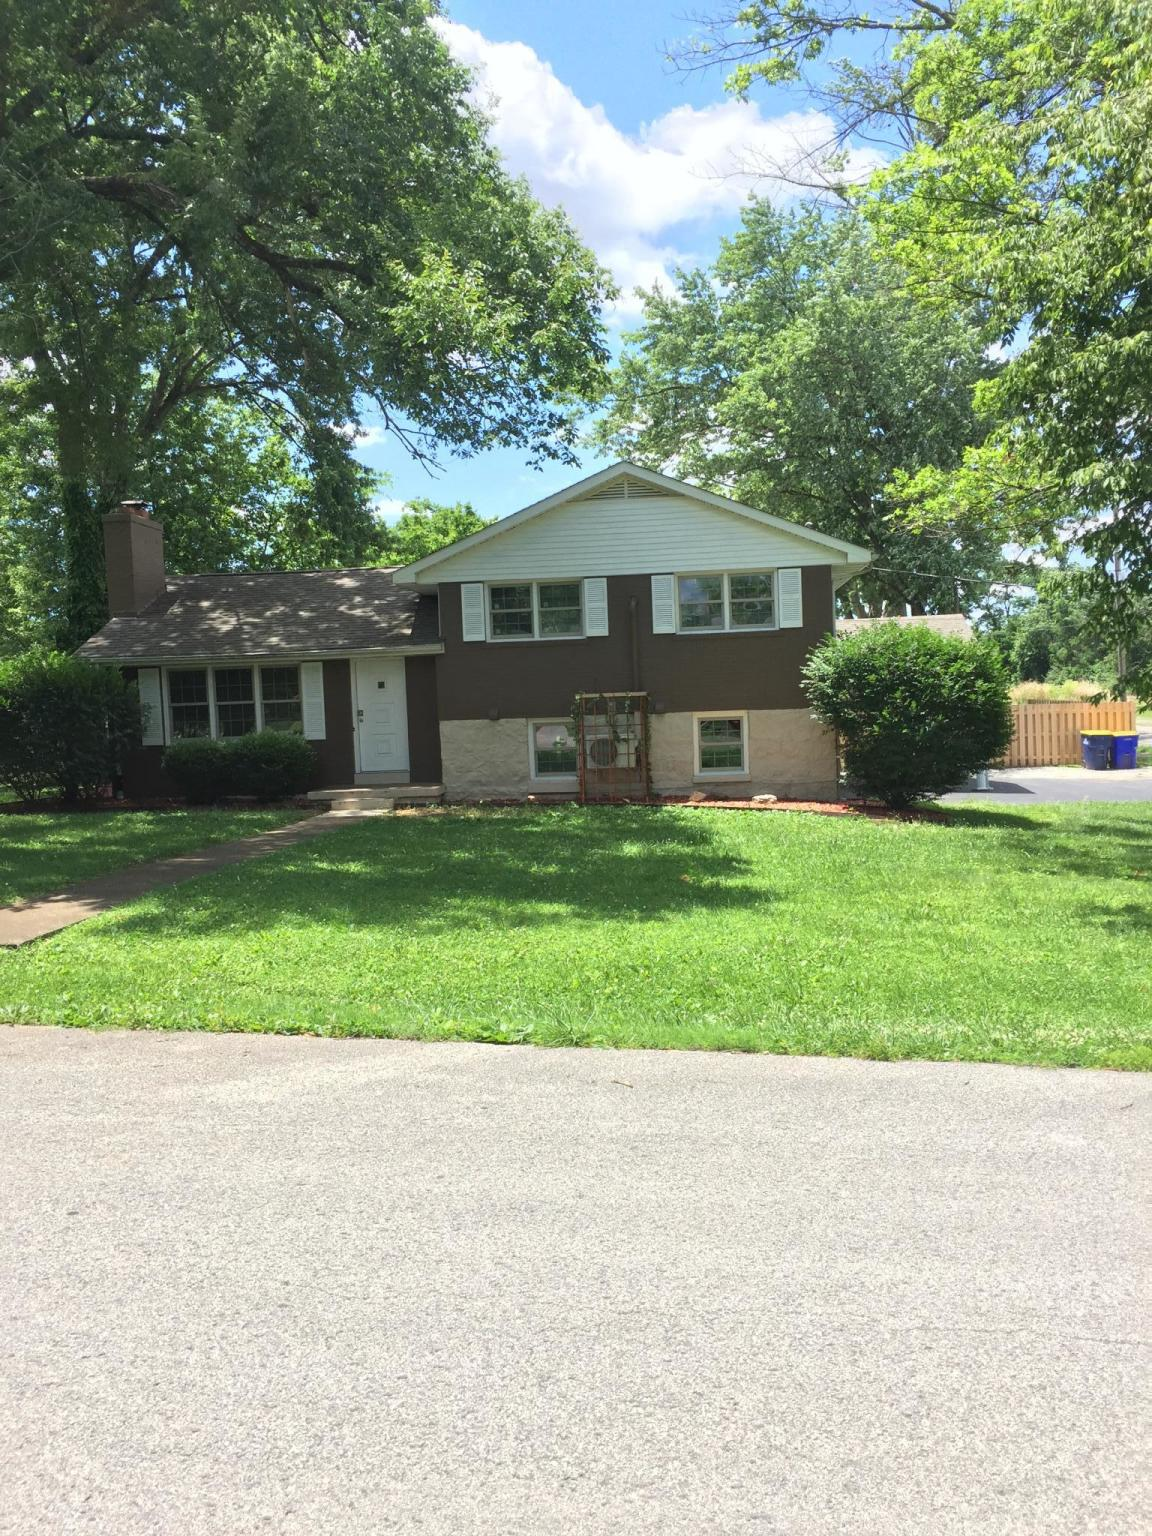 303 Leslie Ave Bowling Green Ky 5 Bed 1 5 Bath Single